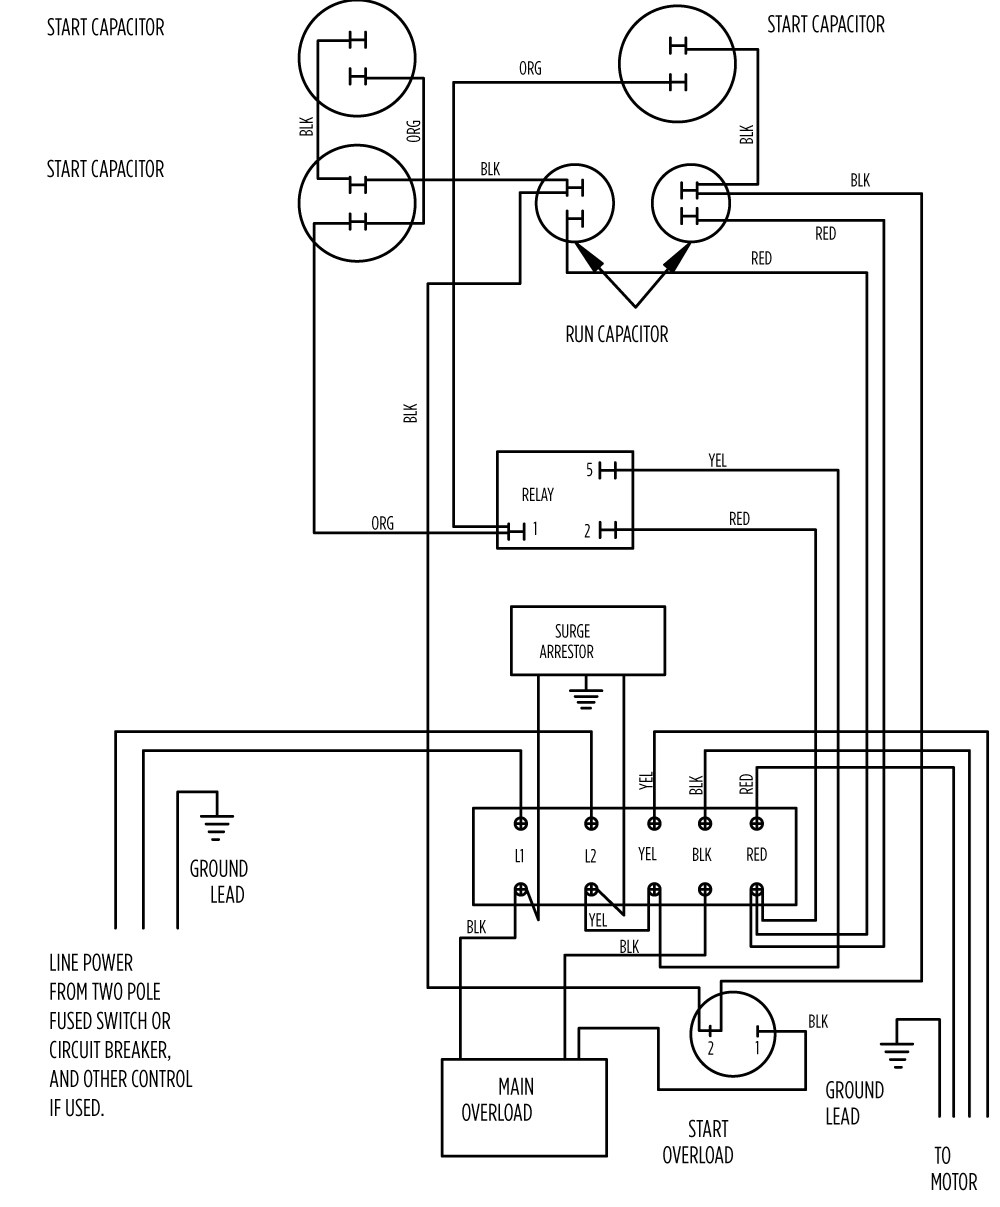 aim manual page 57 single phase motors and controls motor rh franklinwater com motor control wiring diagram software bldc motor controller wiring diagram